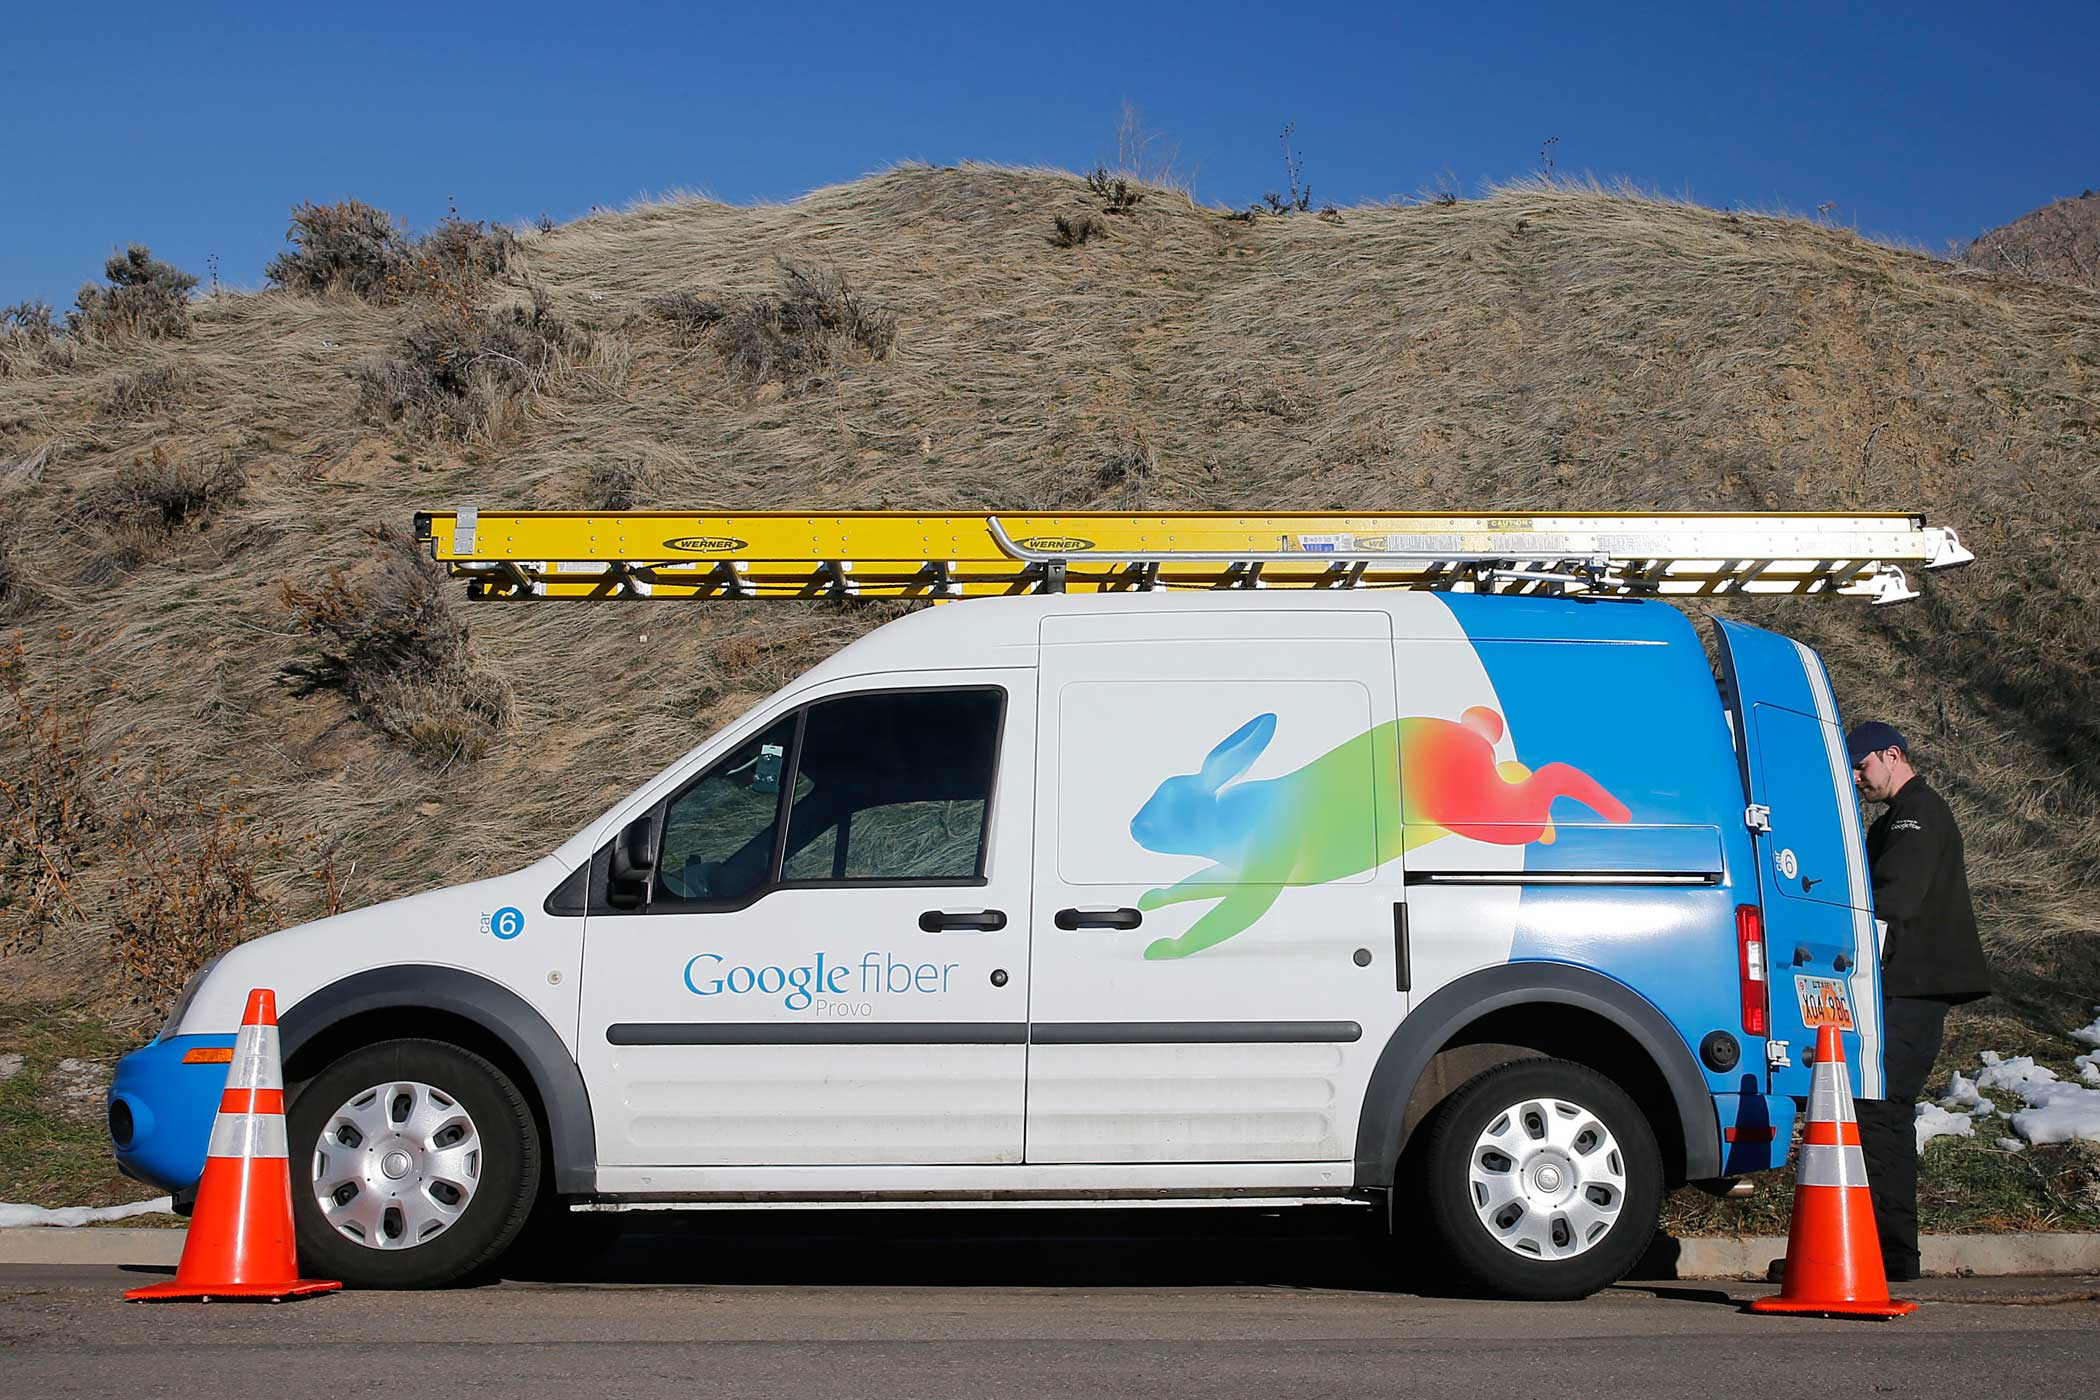 Fiber: Google's high-speed broadband Internet service is now available in three cities, with plans to expand to six more in the coming months.